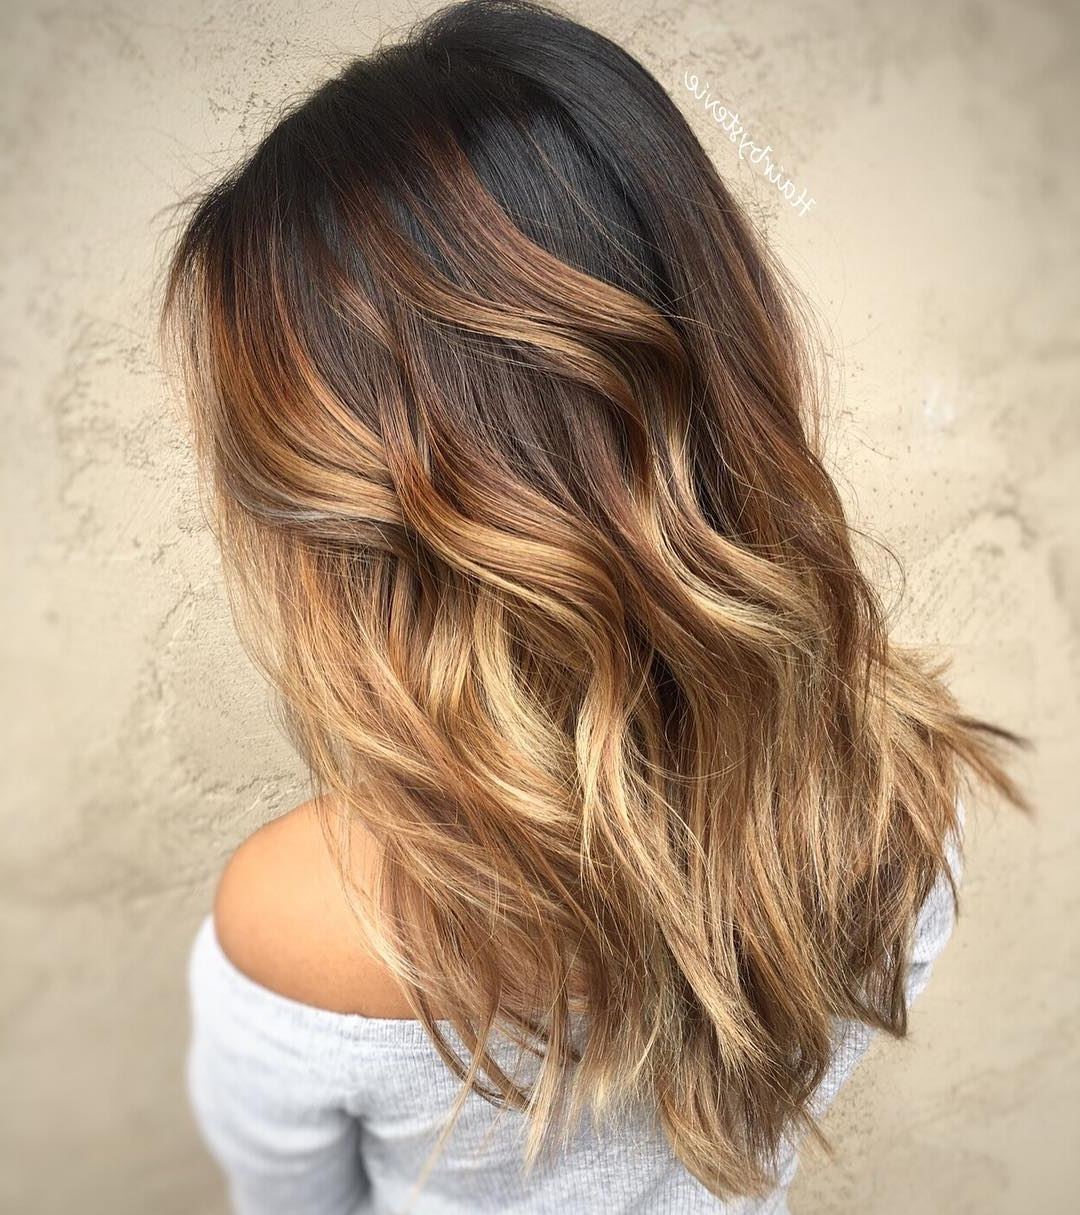 Recent Blonde And Brunette Hairstyles In 20 Sweet Caramel Balayage Hairstyles For Brunettes And Beyond (View 16 of 20)